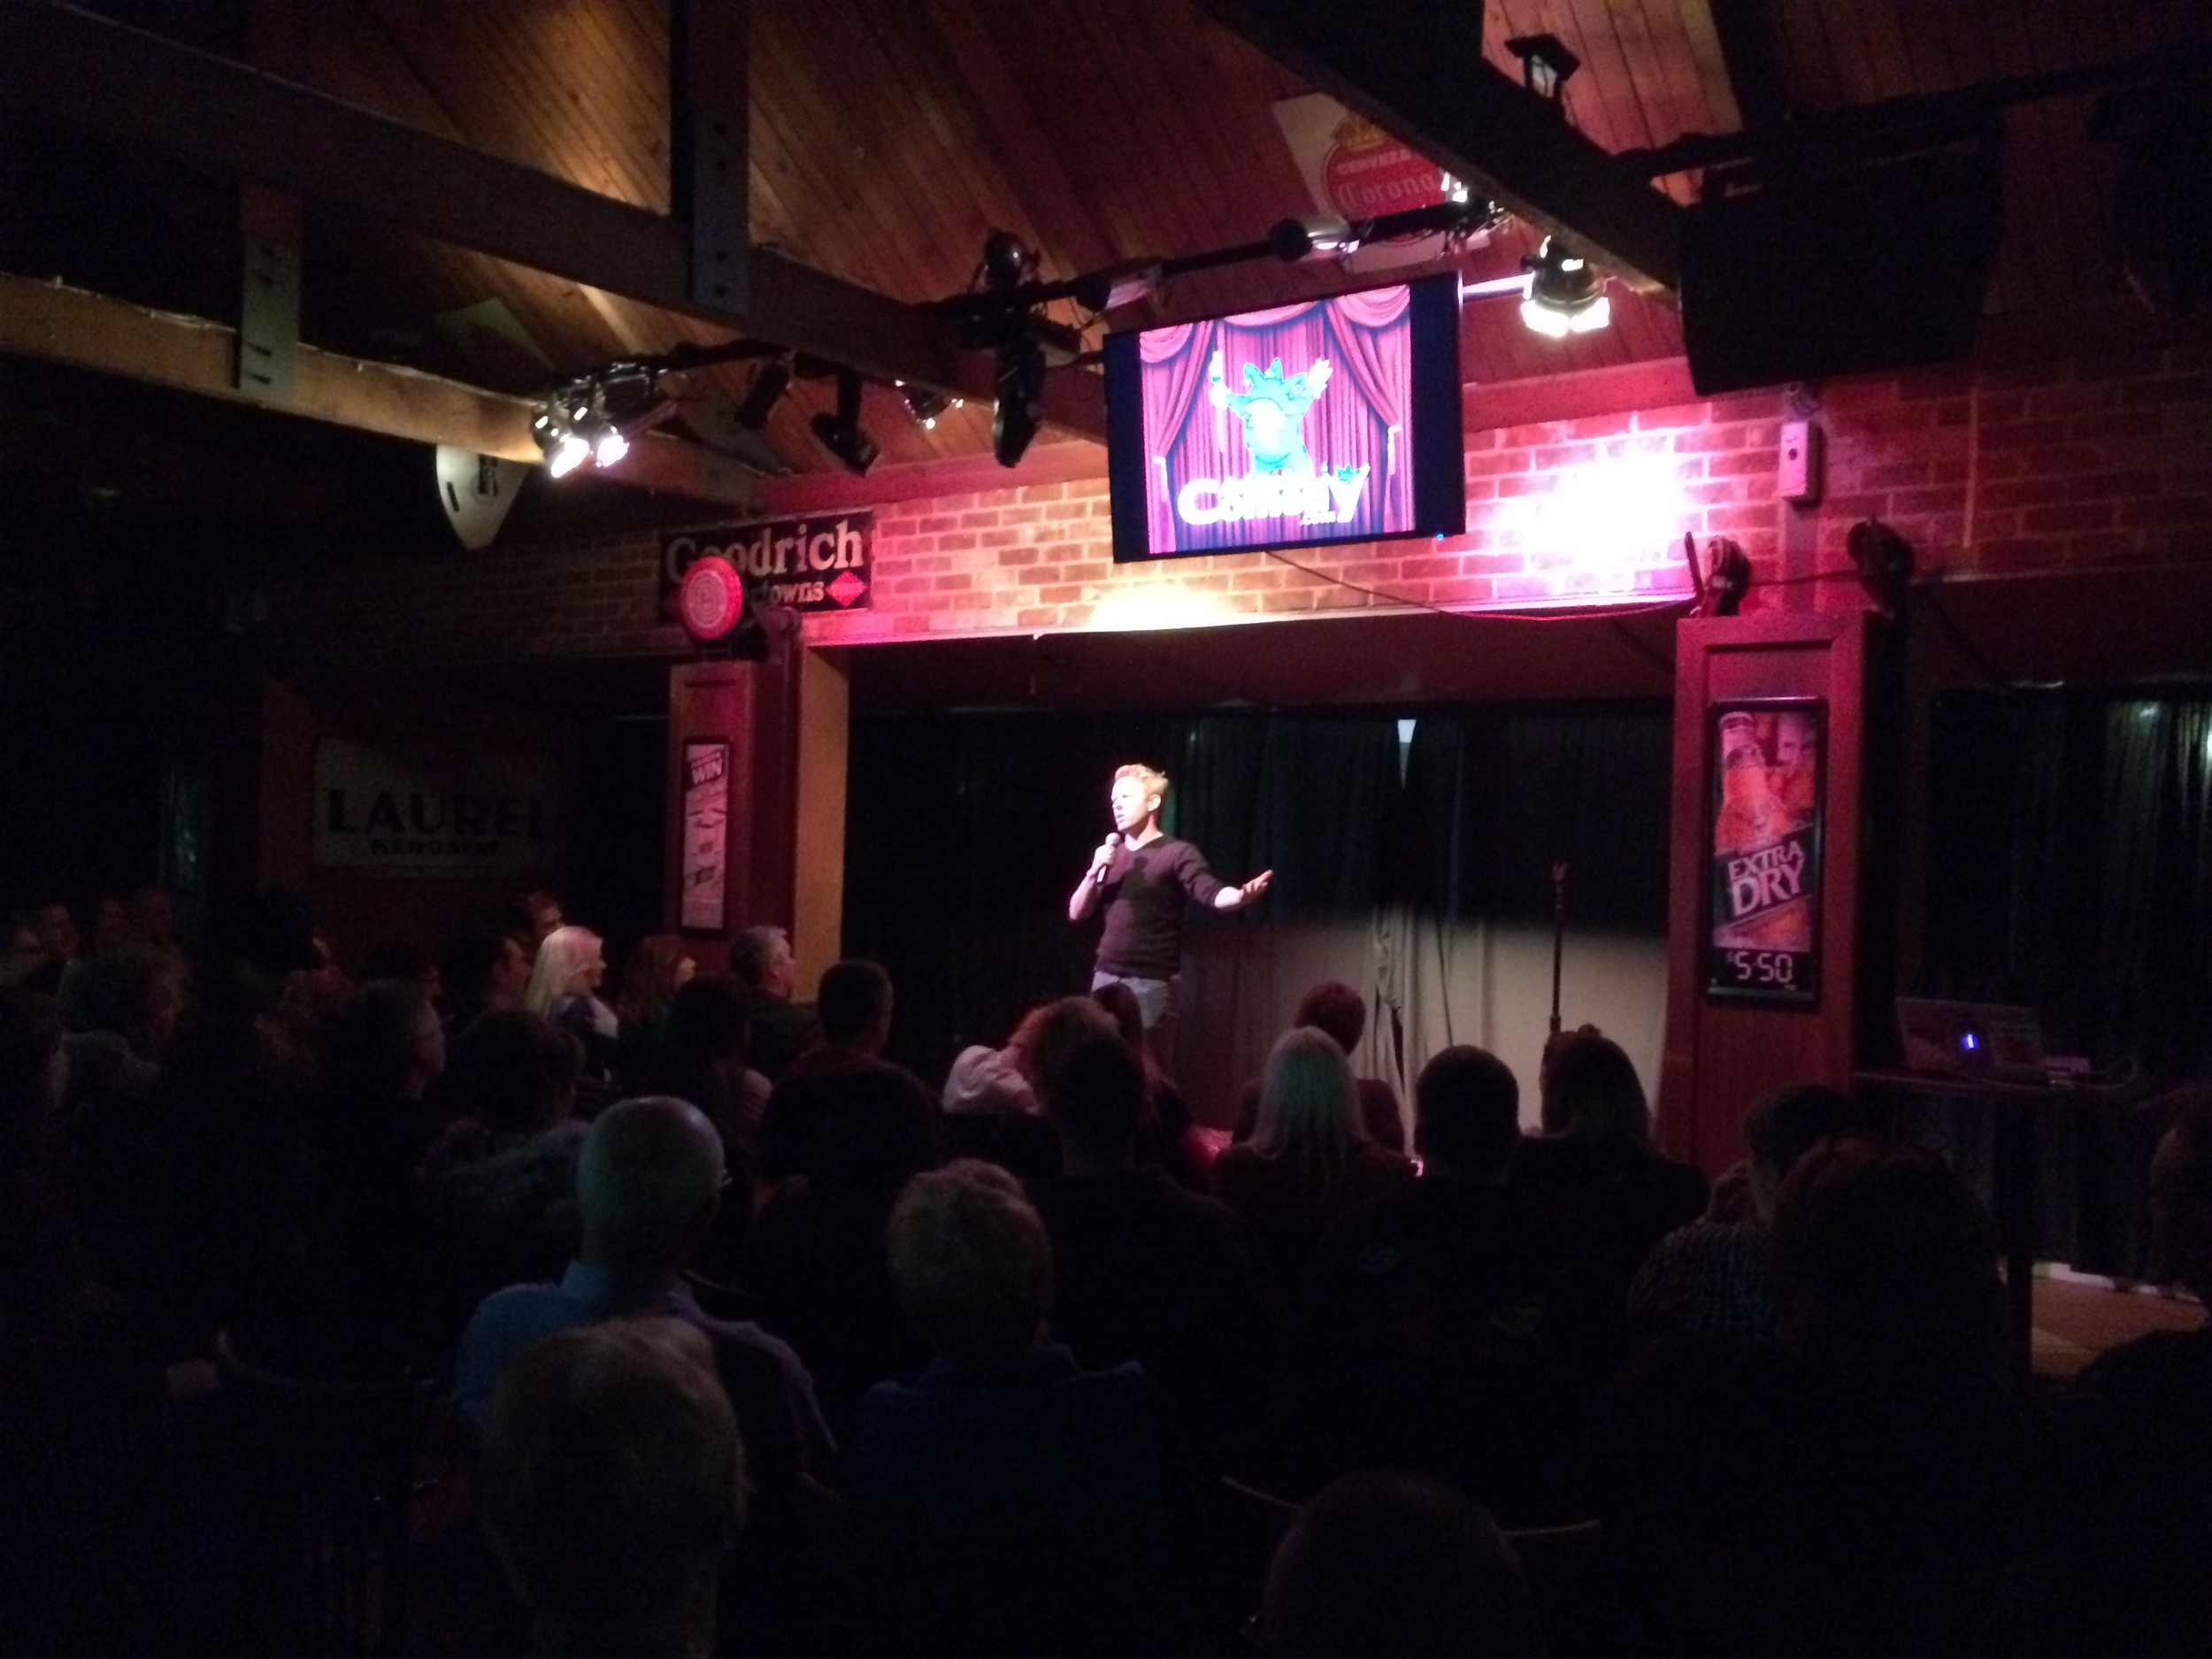 Graham Self performing for the packed audience.